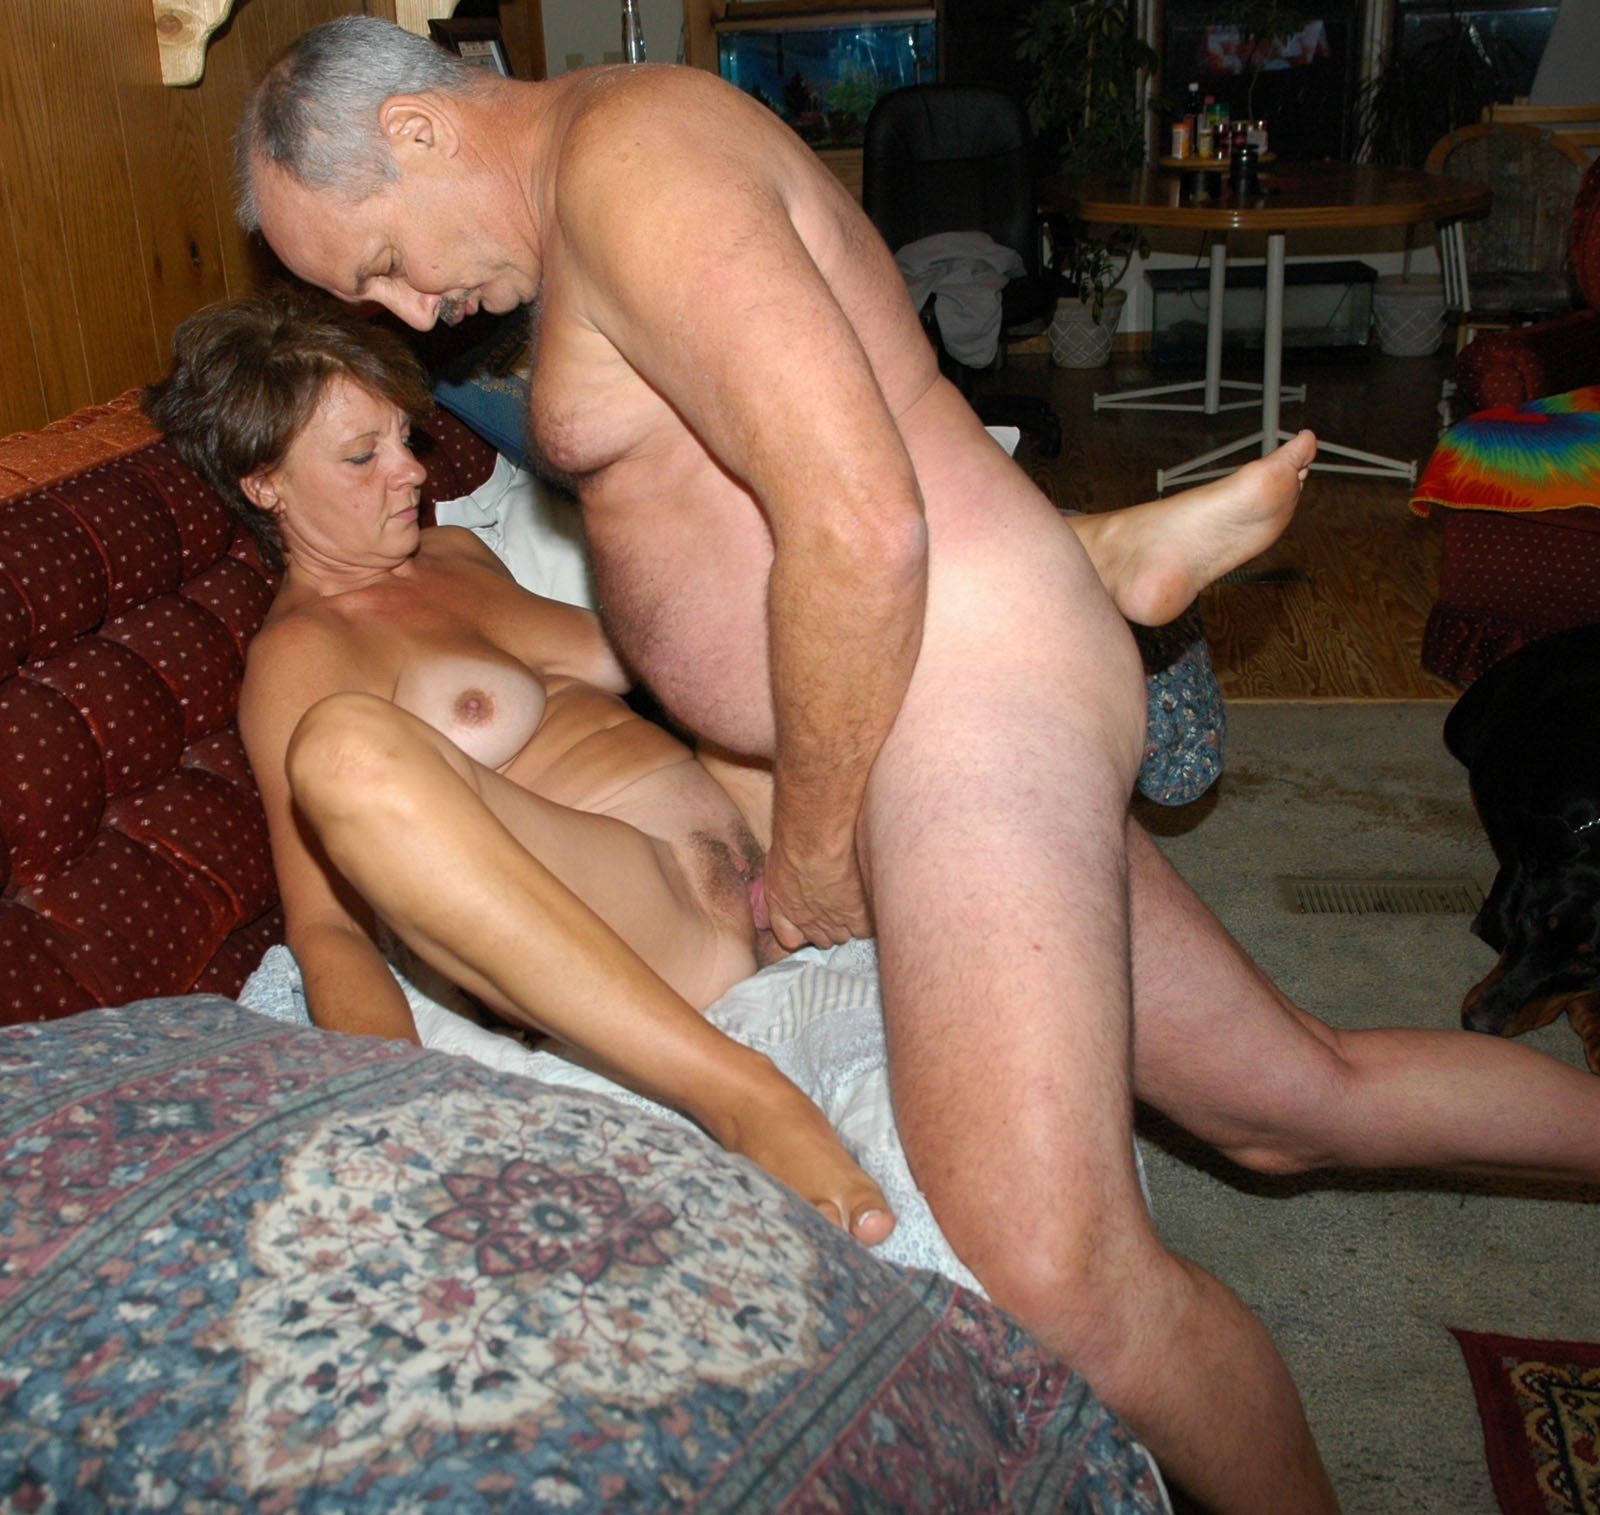 sex Homemade amateur mature